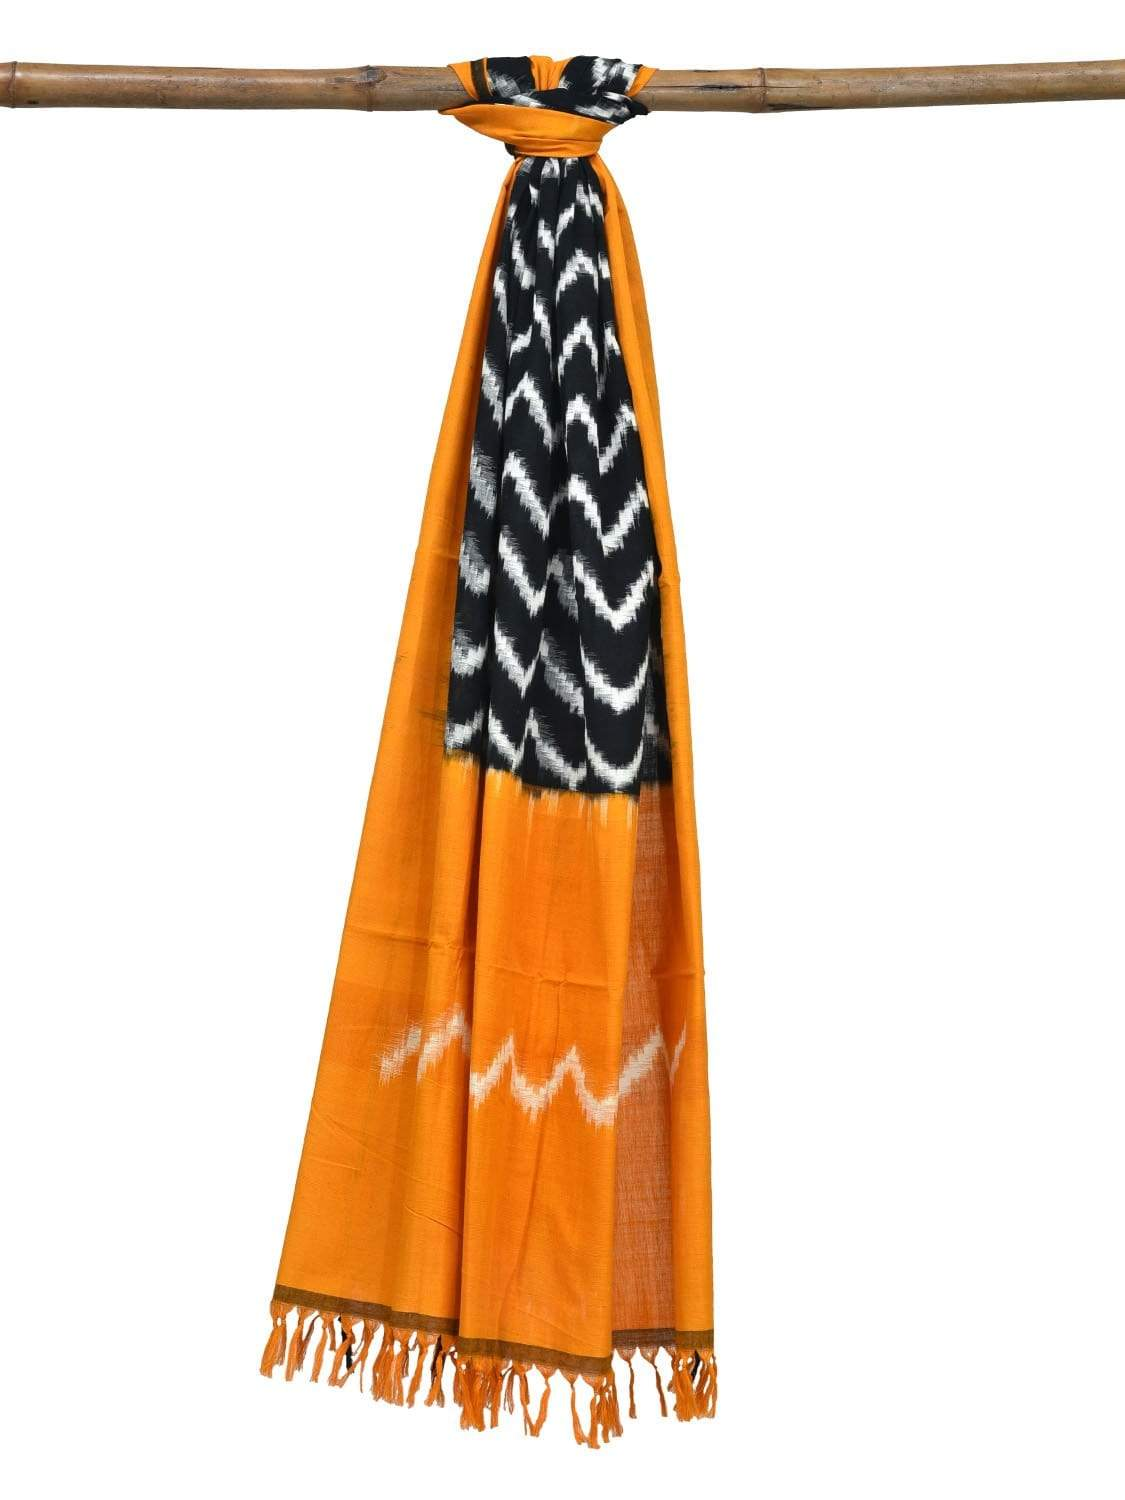 Yellow and Black Pochampally Ikat Cotton Handloom Dupatta with Zig-Zag Design ds0211